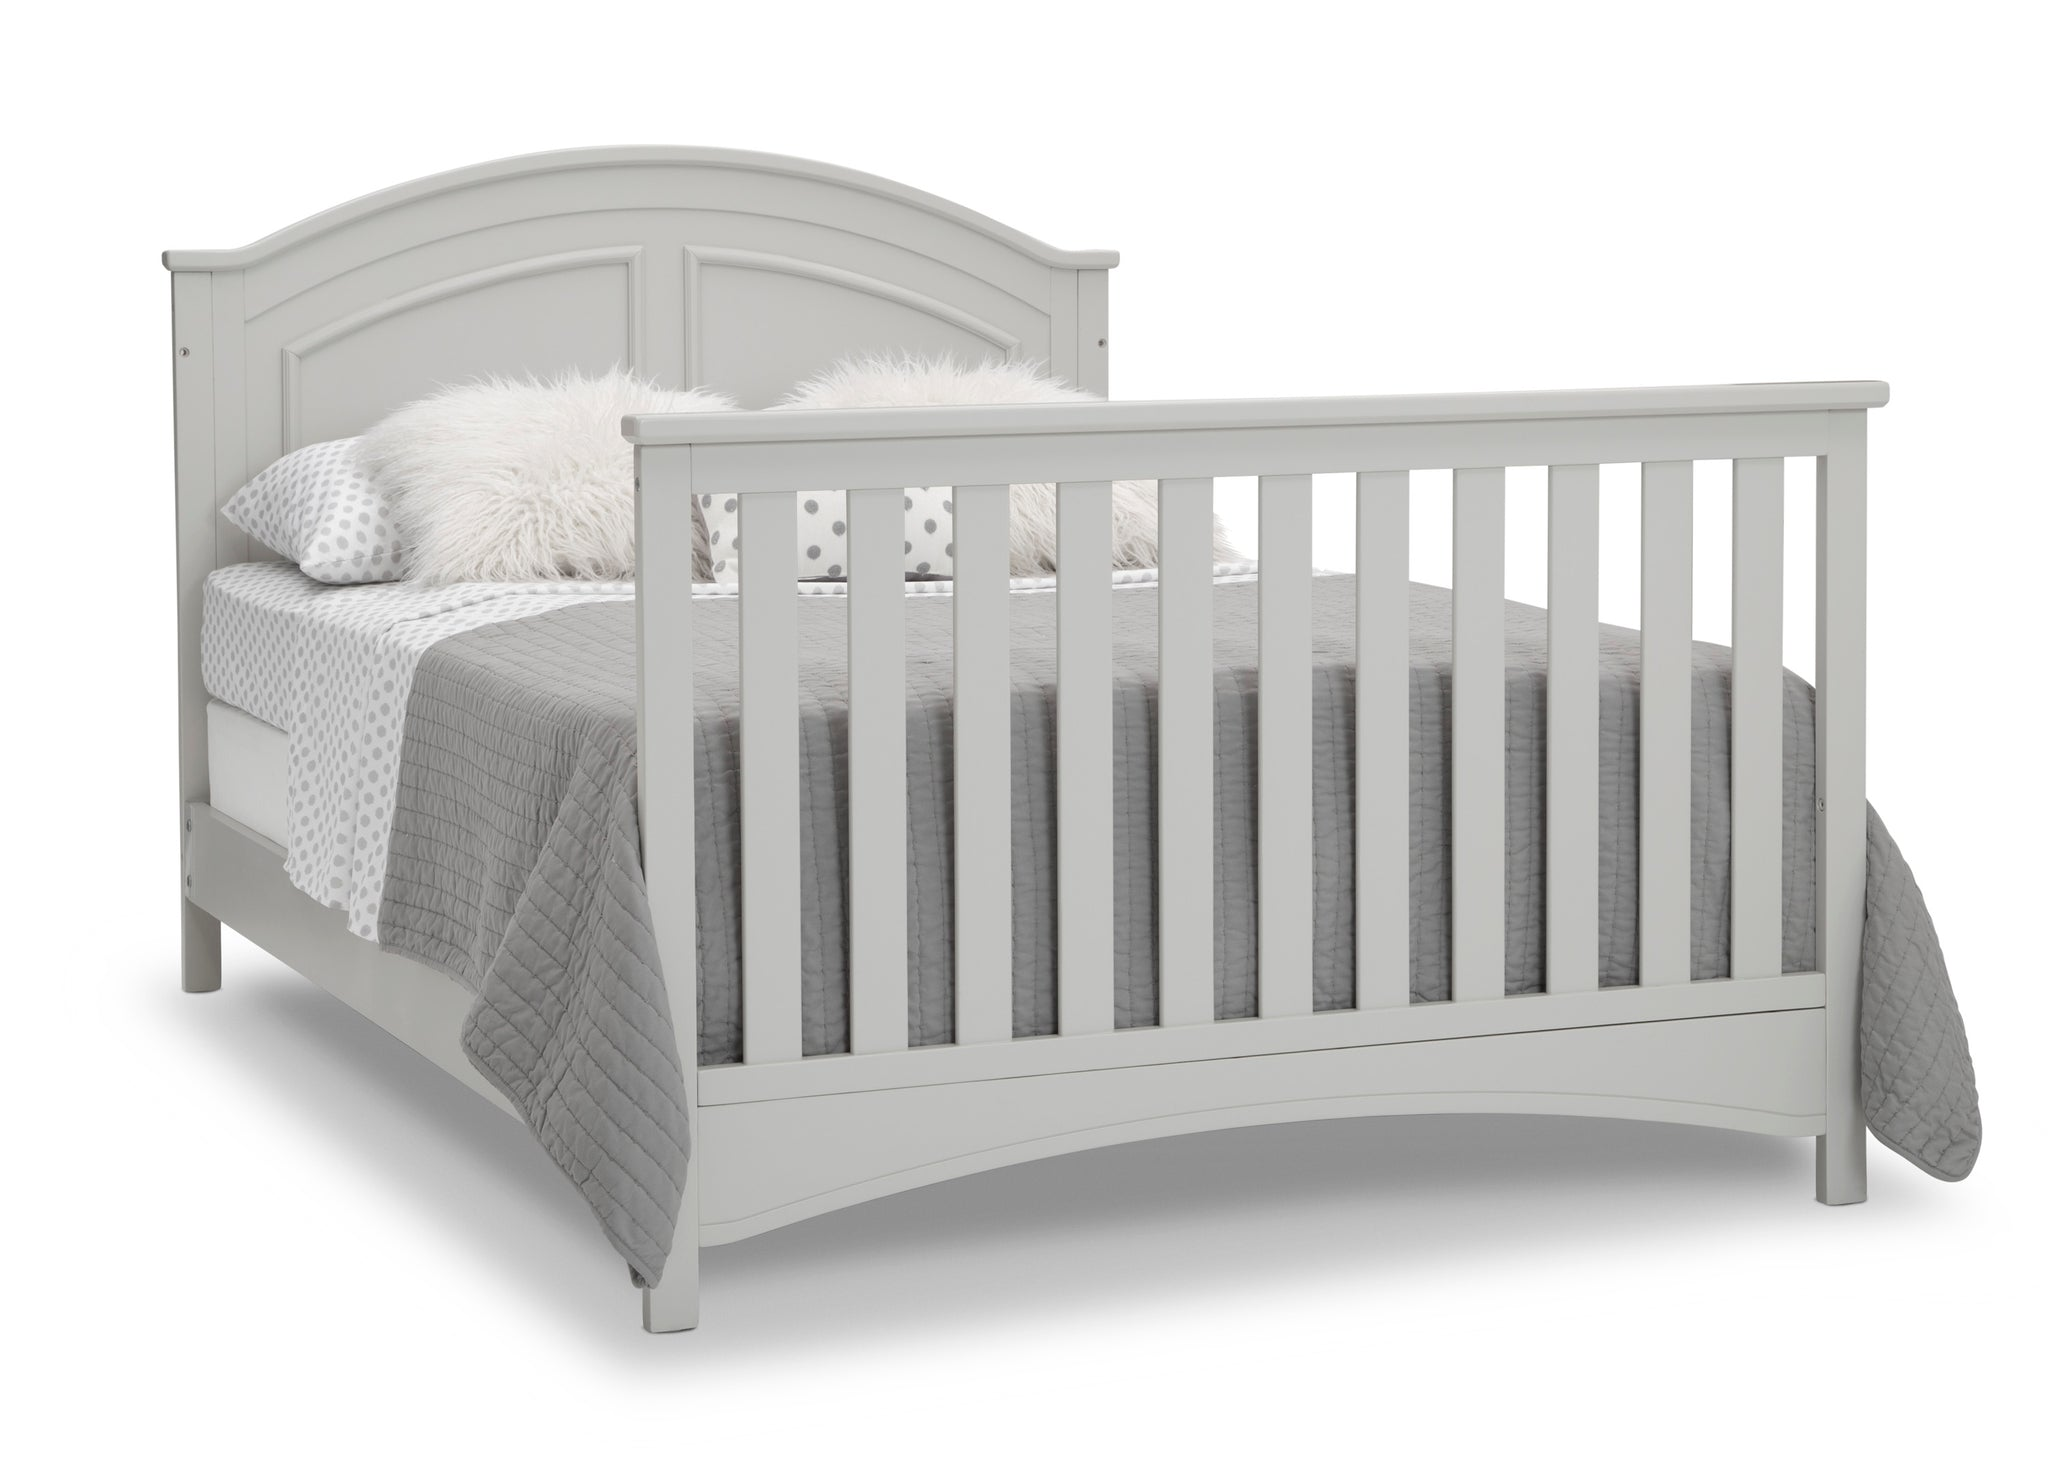 Delta Children Moonstruck Grey (1351) Perry 6-in-1 Convertible Crib, Right Full Bed with Headboard and Footboard Silo View